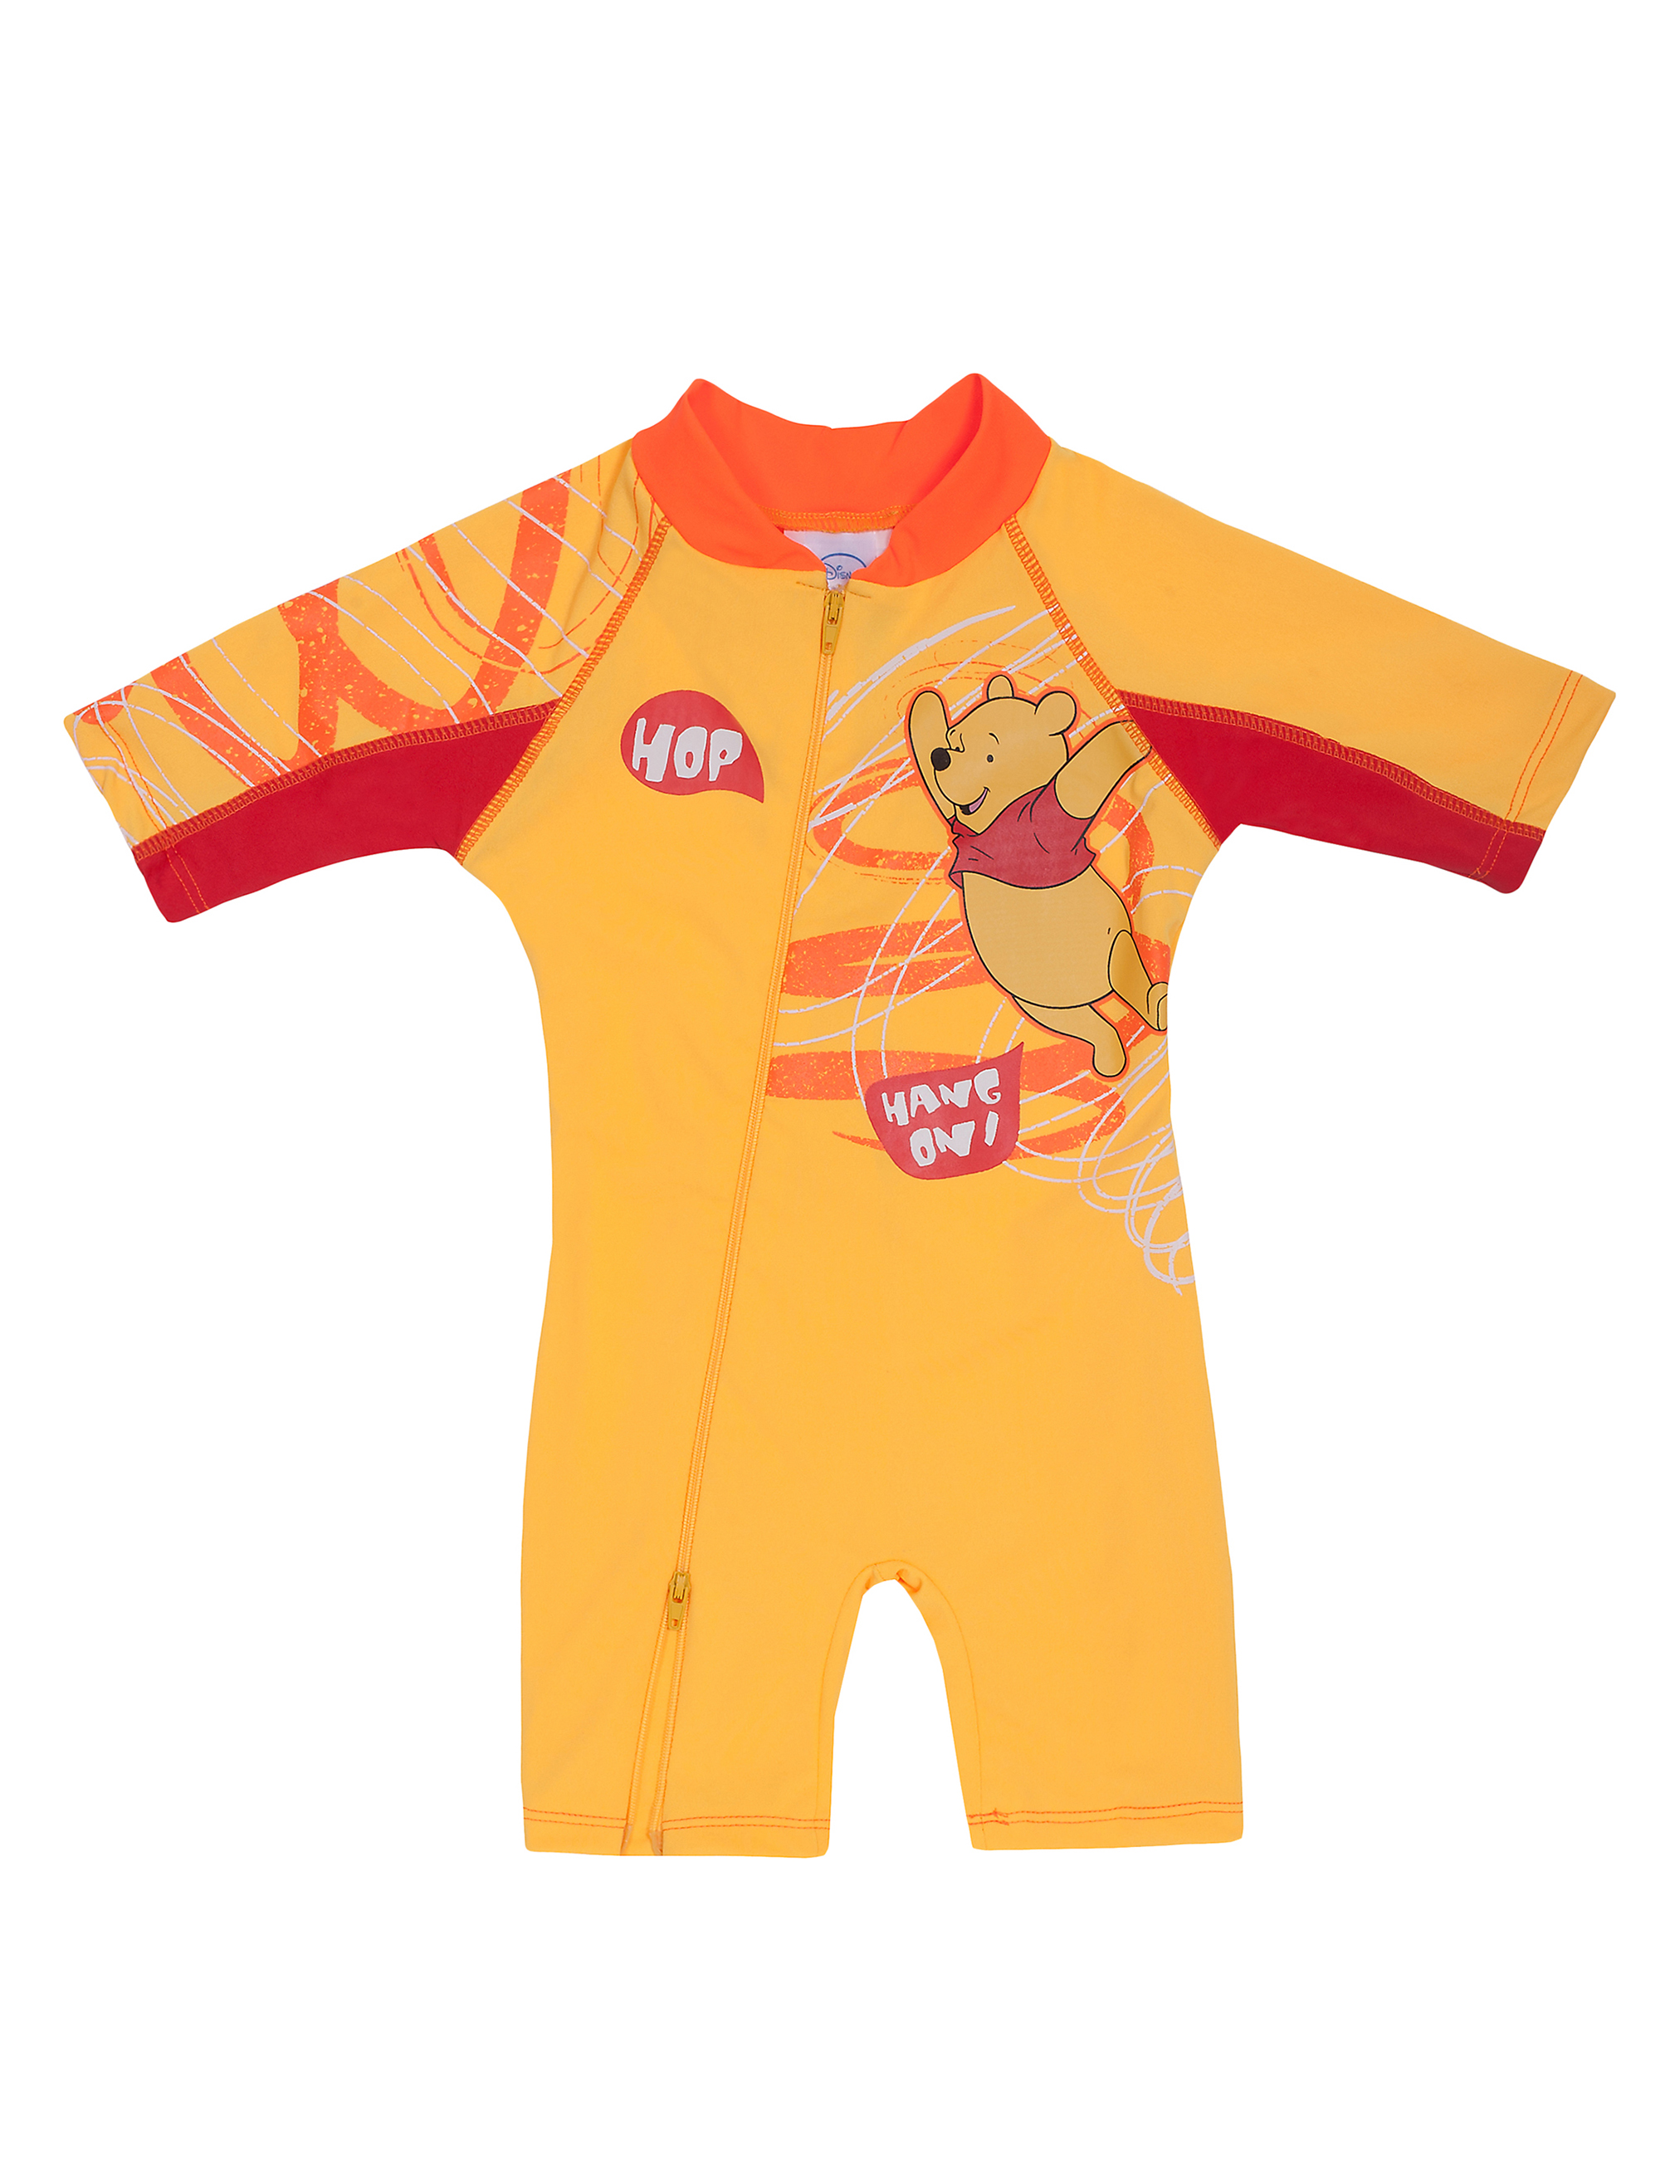 53049b4673 Disney Winnie the Pooh Yellow UV Swimsuit by SunWay